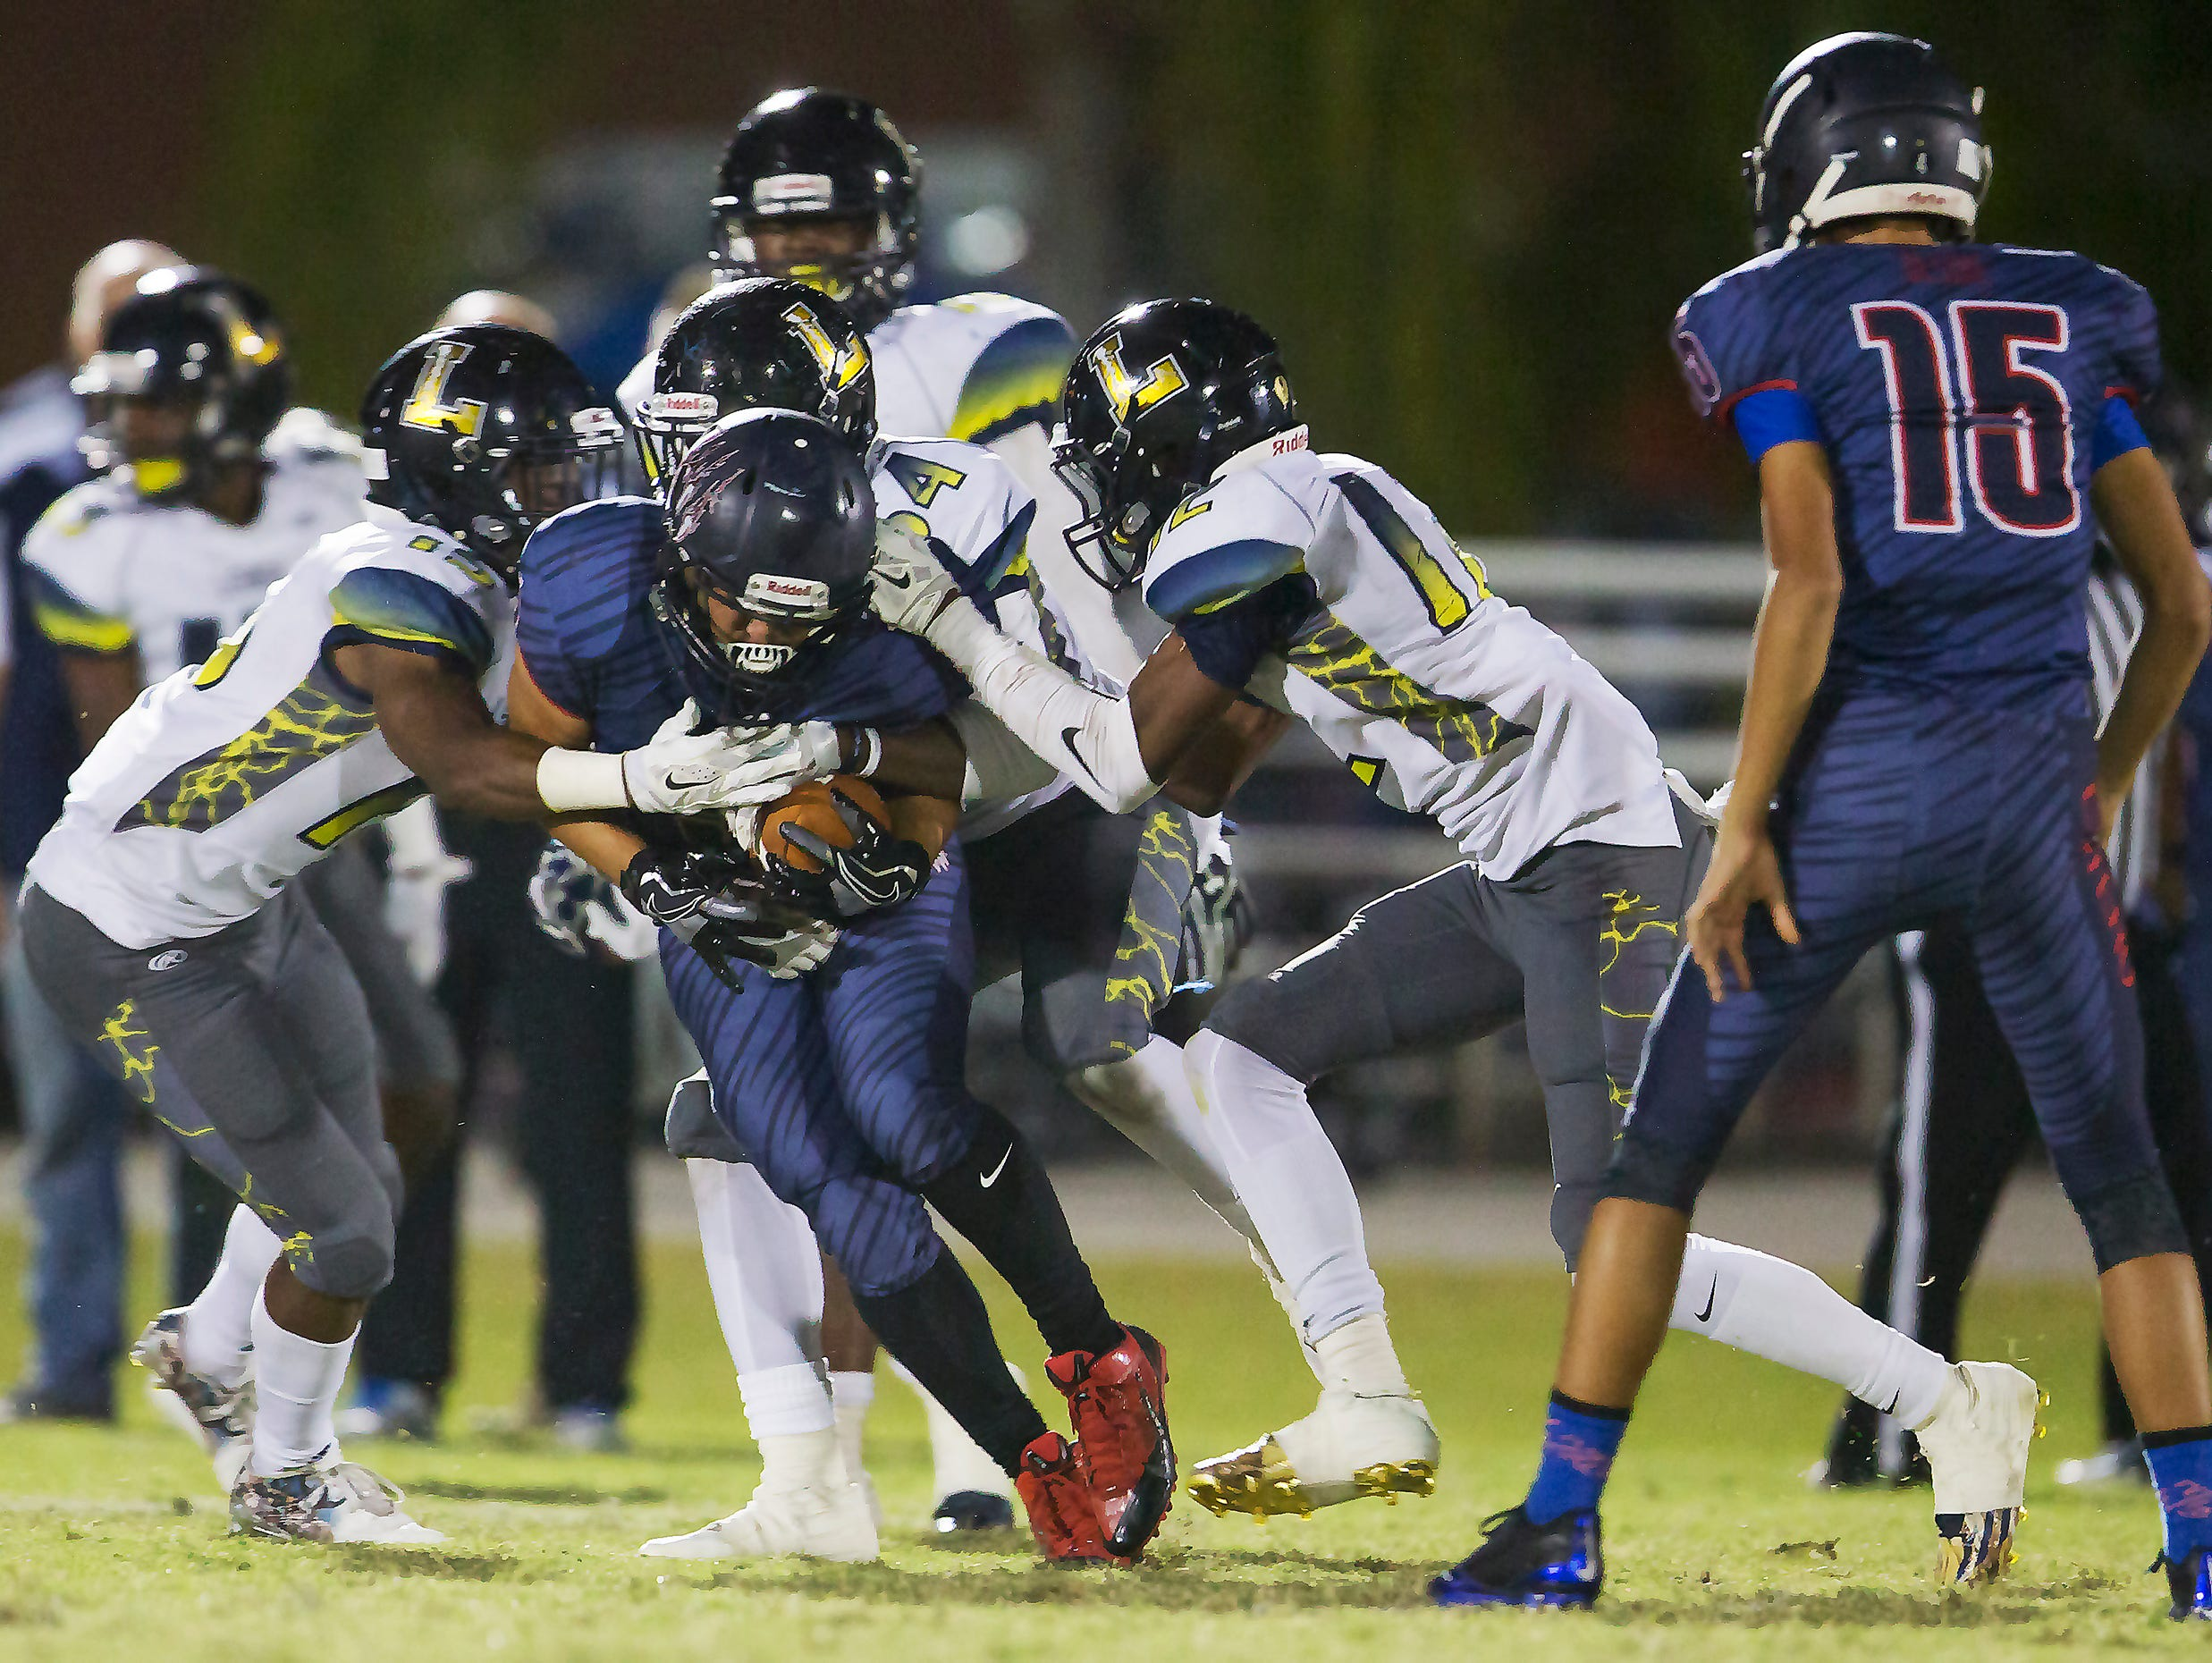 Lehigh Senior High School defenders tackle Estero's Justin Lopez for a loss during second quarter play on Friday at Estero High School.